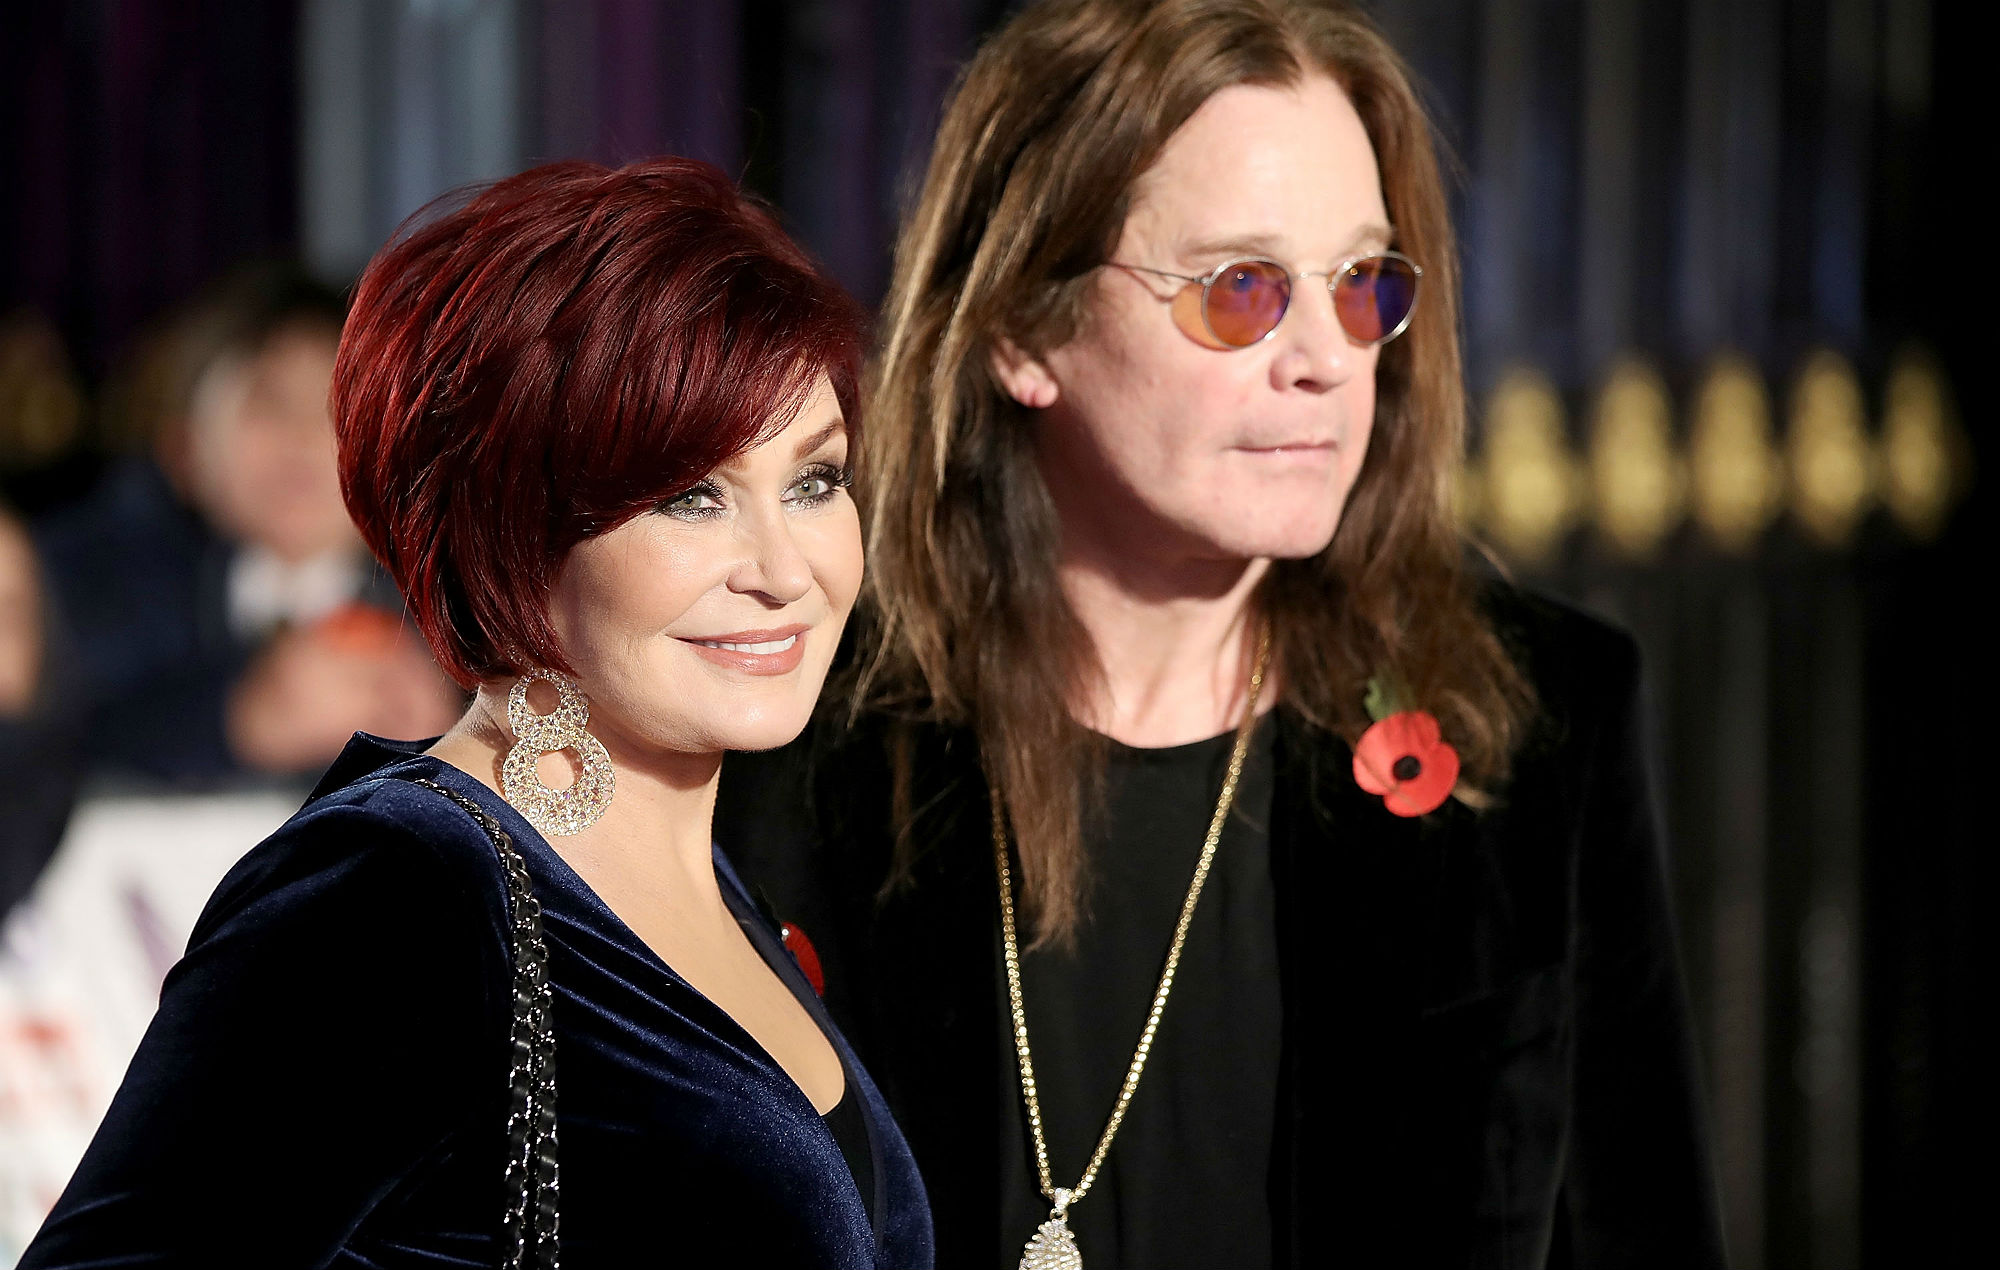 Sharon Osbourne says her 2020 goal is to produce a movie about her and Ozzy